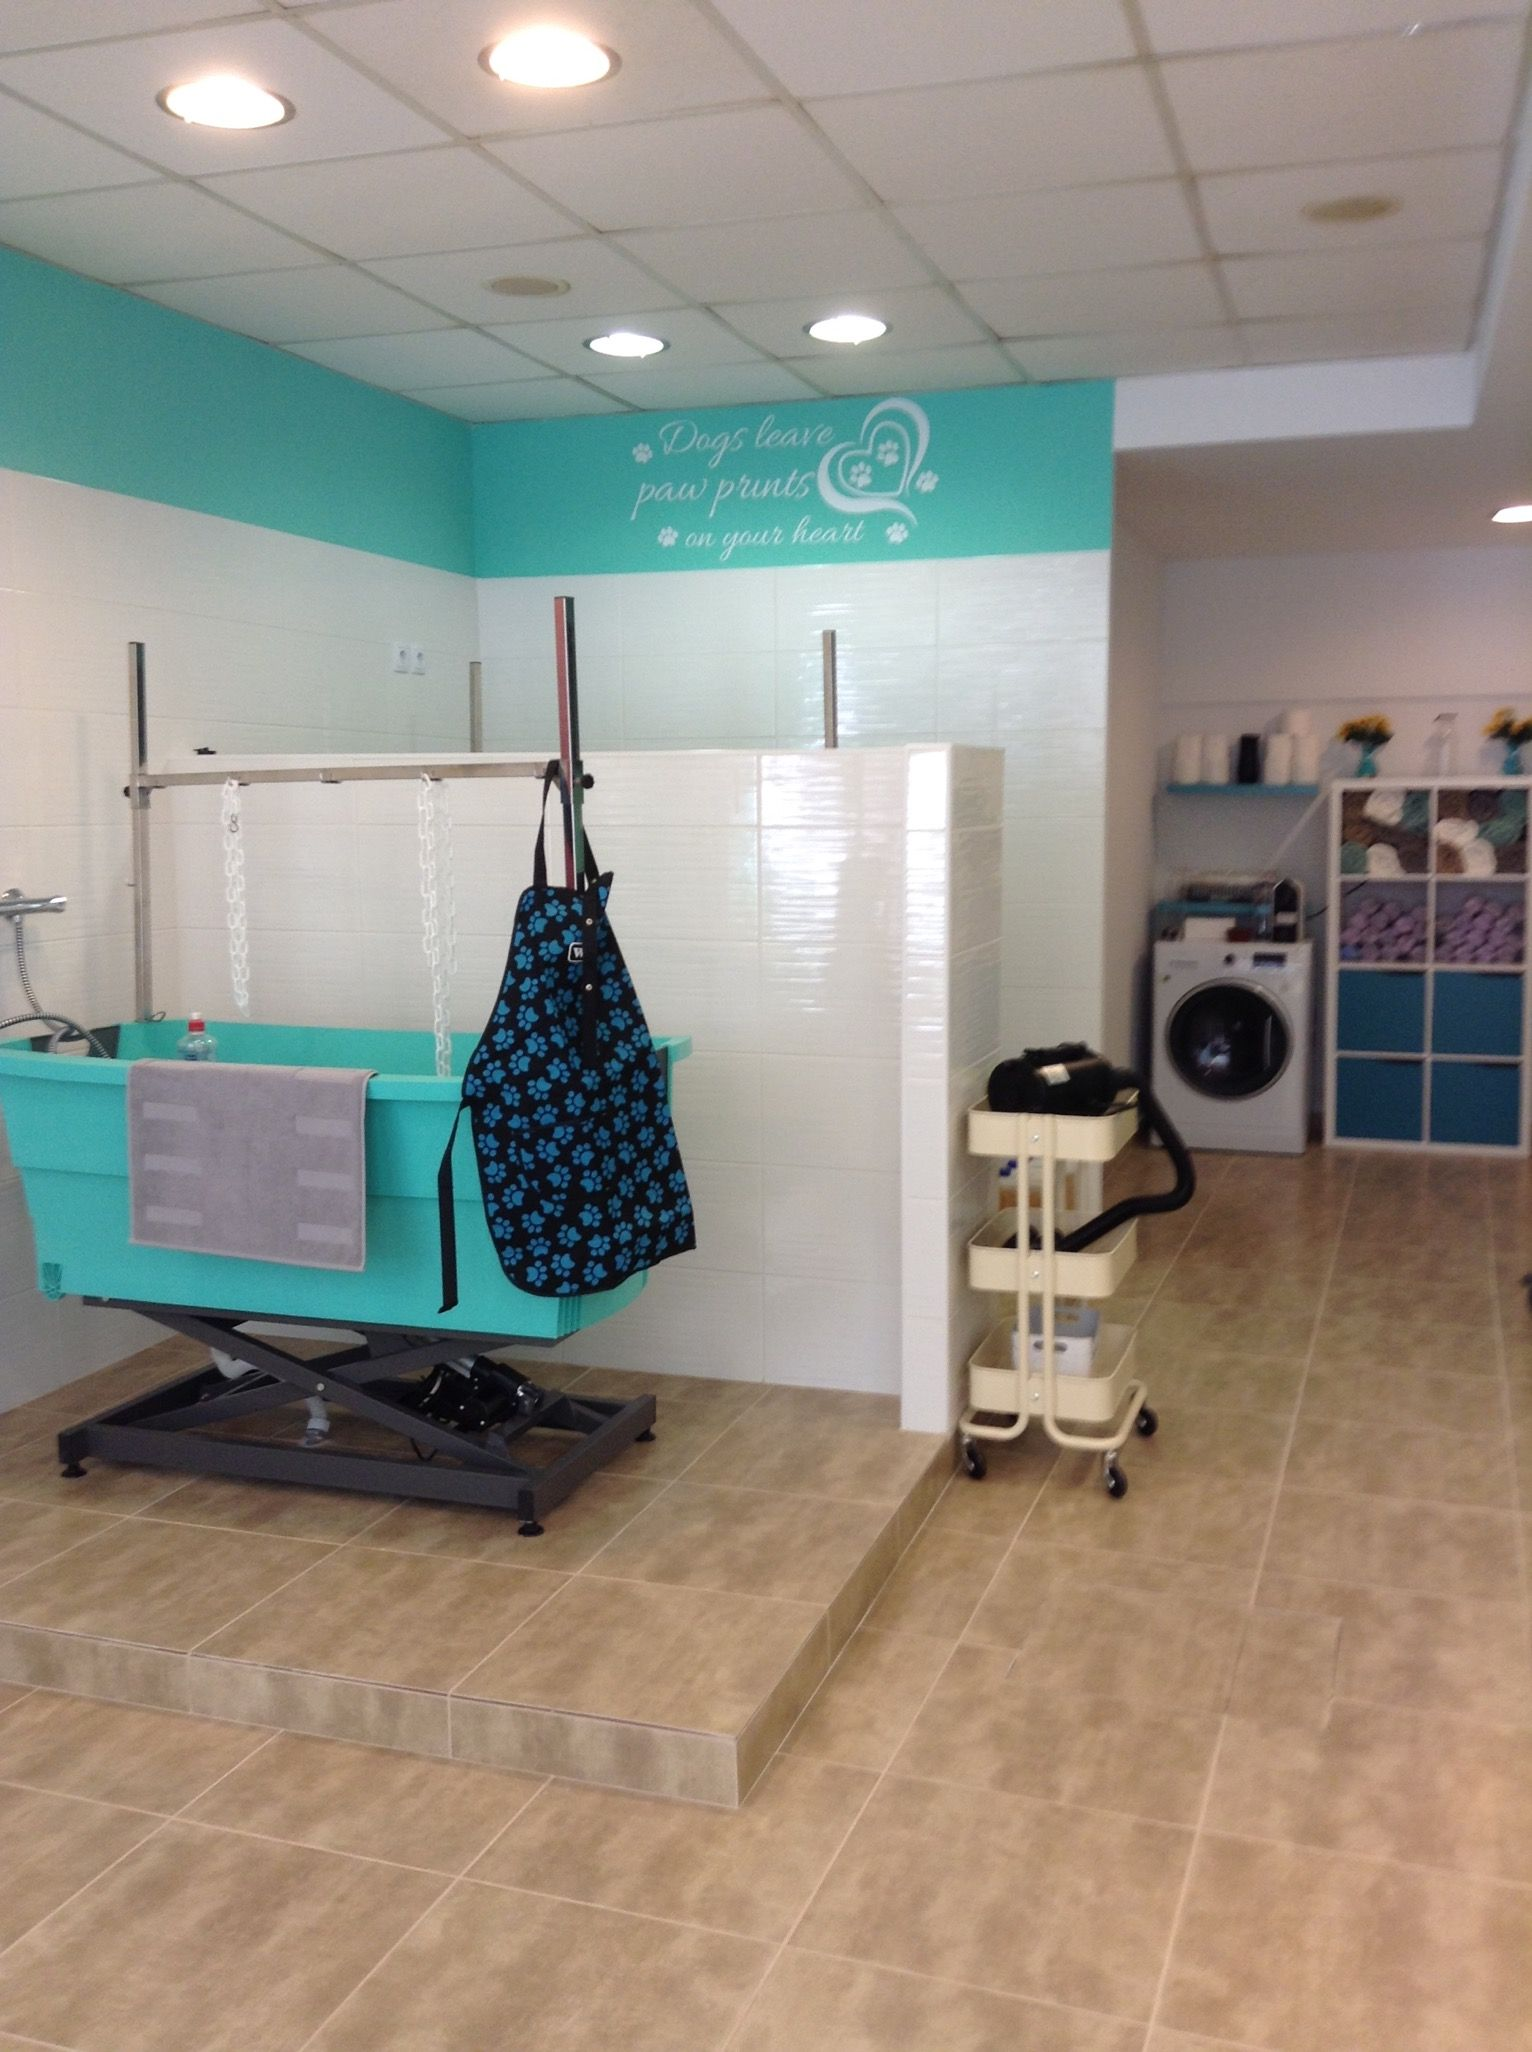 repinned- Interior pet grooming salon | Dog Grooming | Pinterest ...